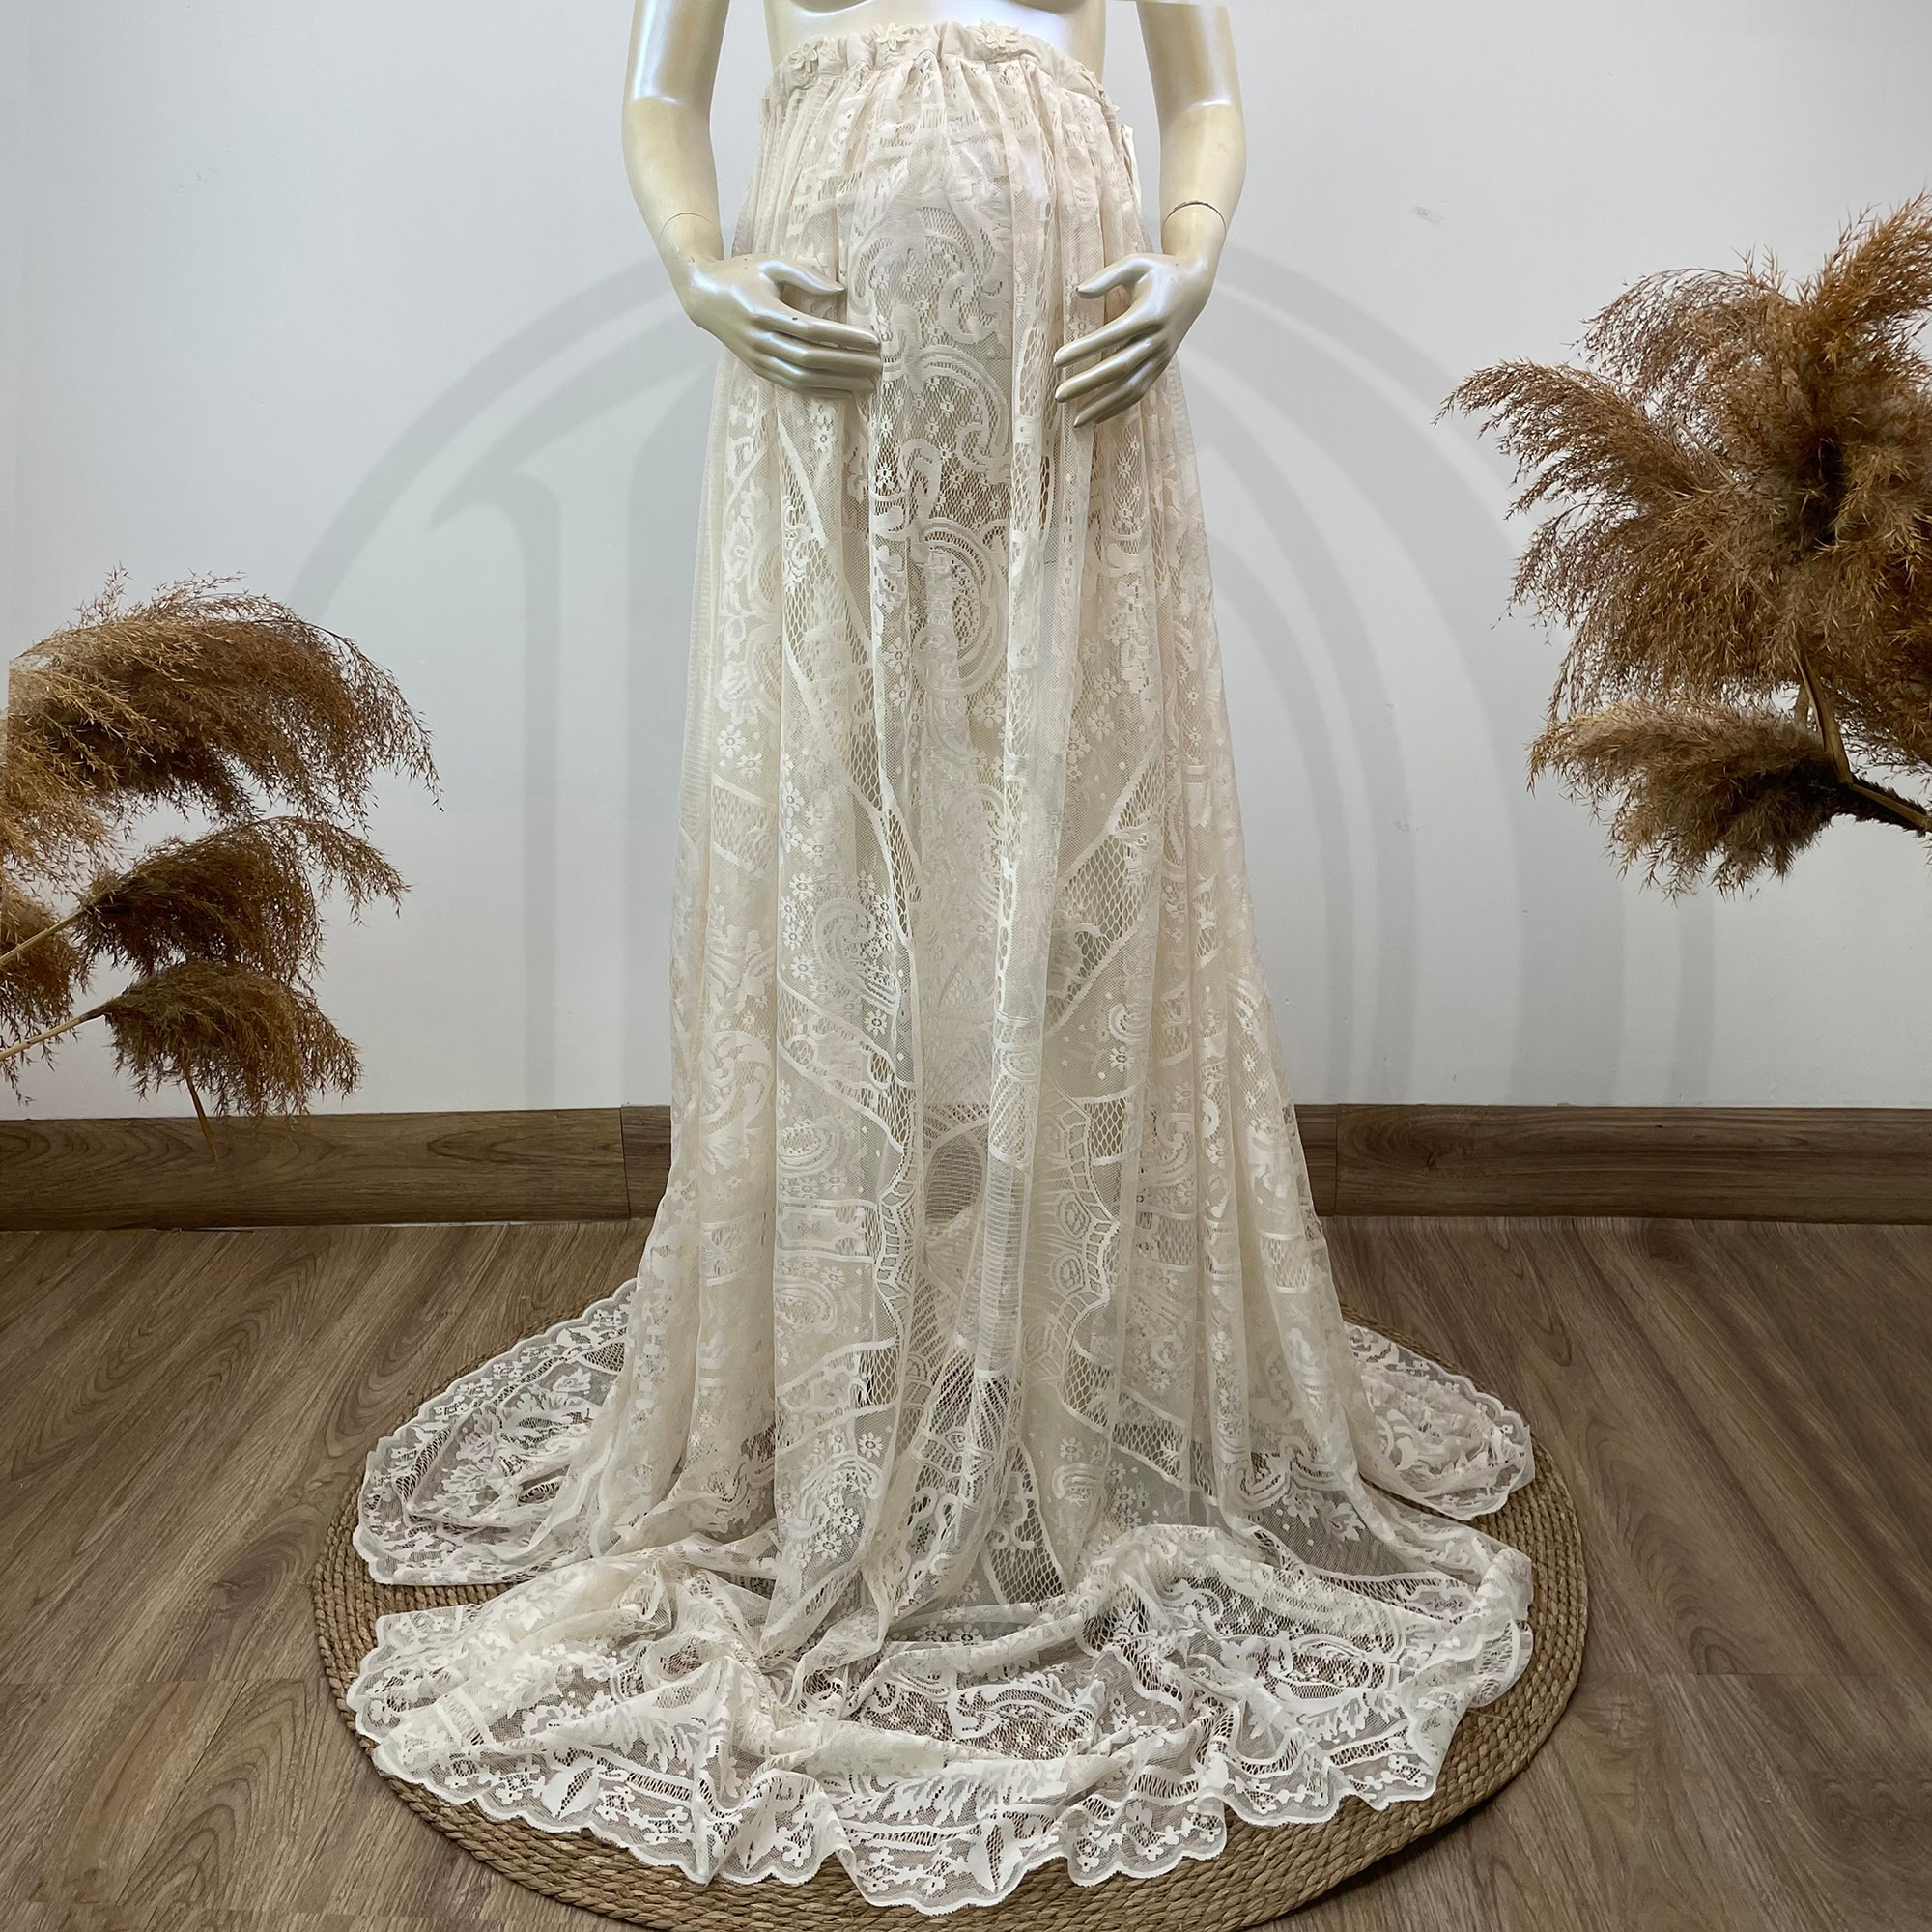 Photo Shoot Props Maxi Long Vintage Lace Maternity Skirt Pregnant Gown Party Evening Robe for Women Photogrpahy Accesssories